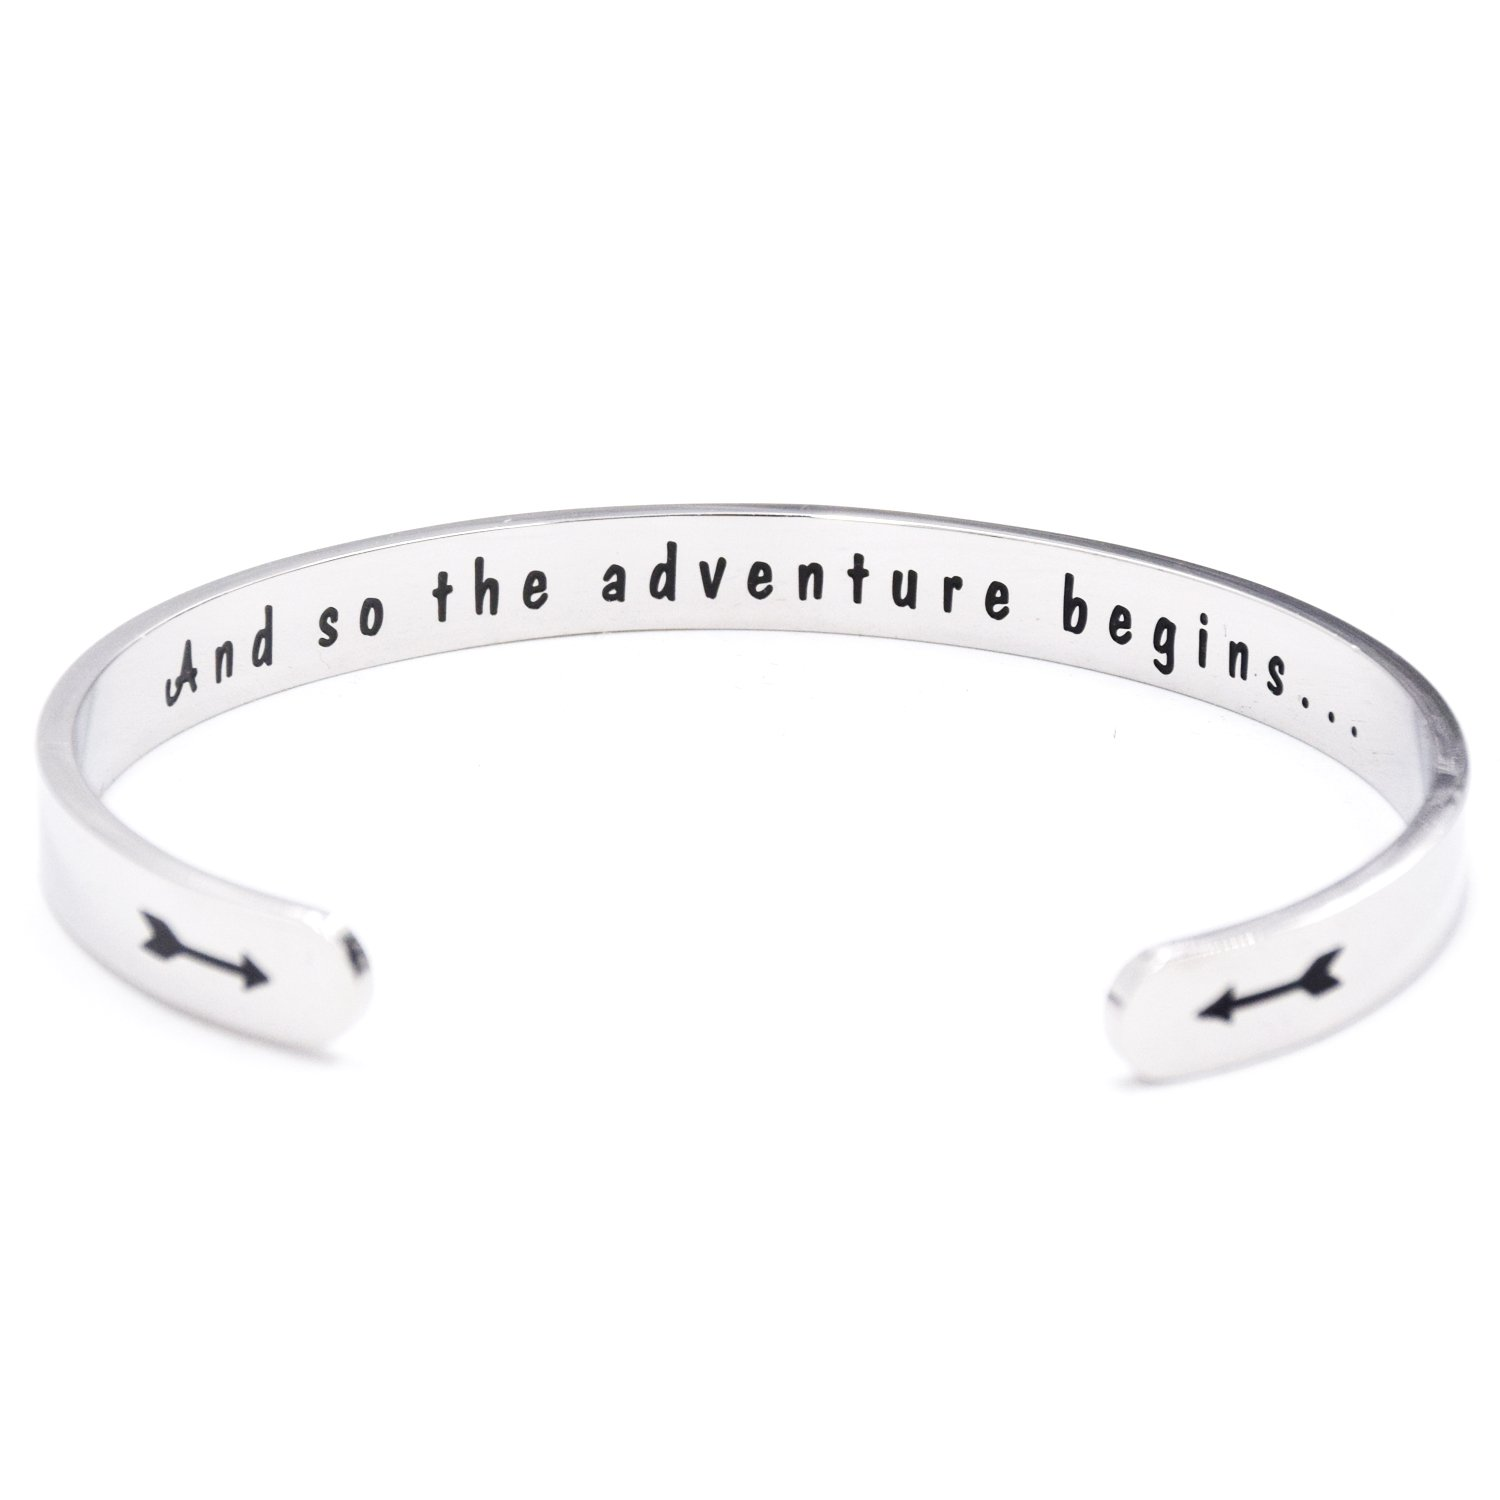 2021 Graduation Gifts Bracelets For Her And So The Adventure Begins Class Of 2021 College Senior Junior High Middle School Students Gift Cuff Bracelet Inspirational Gifts For Women Graduation Jewelry